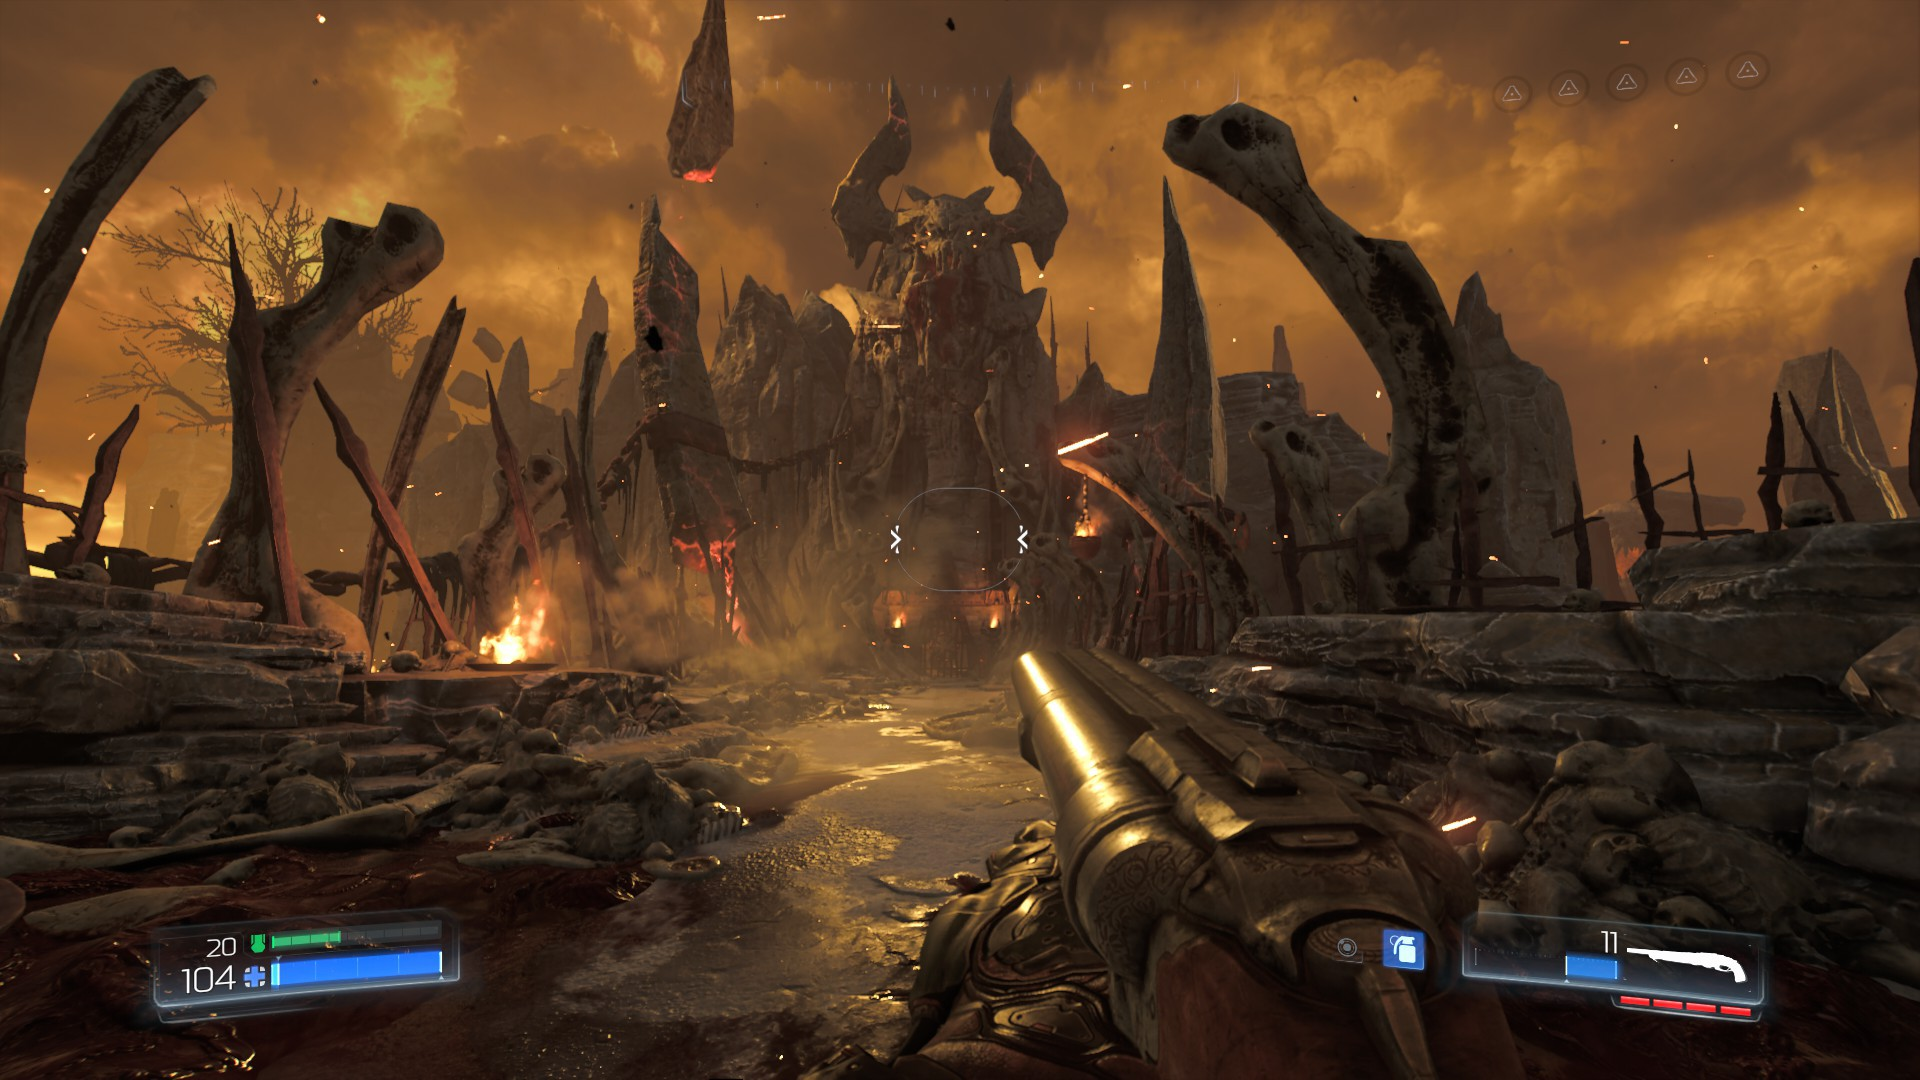 Doom Cracked Gameplay